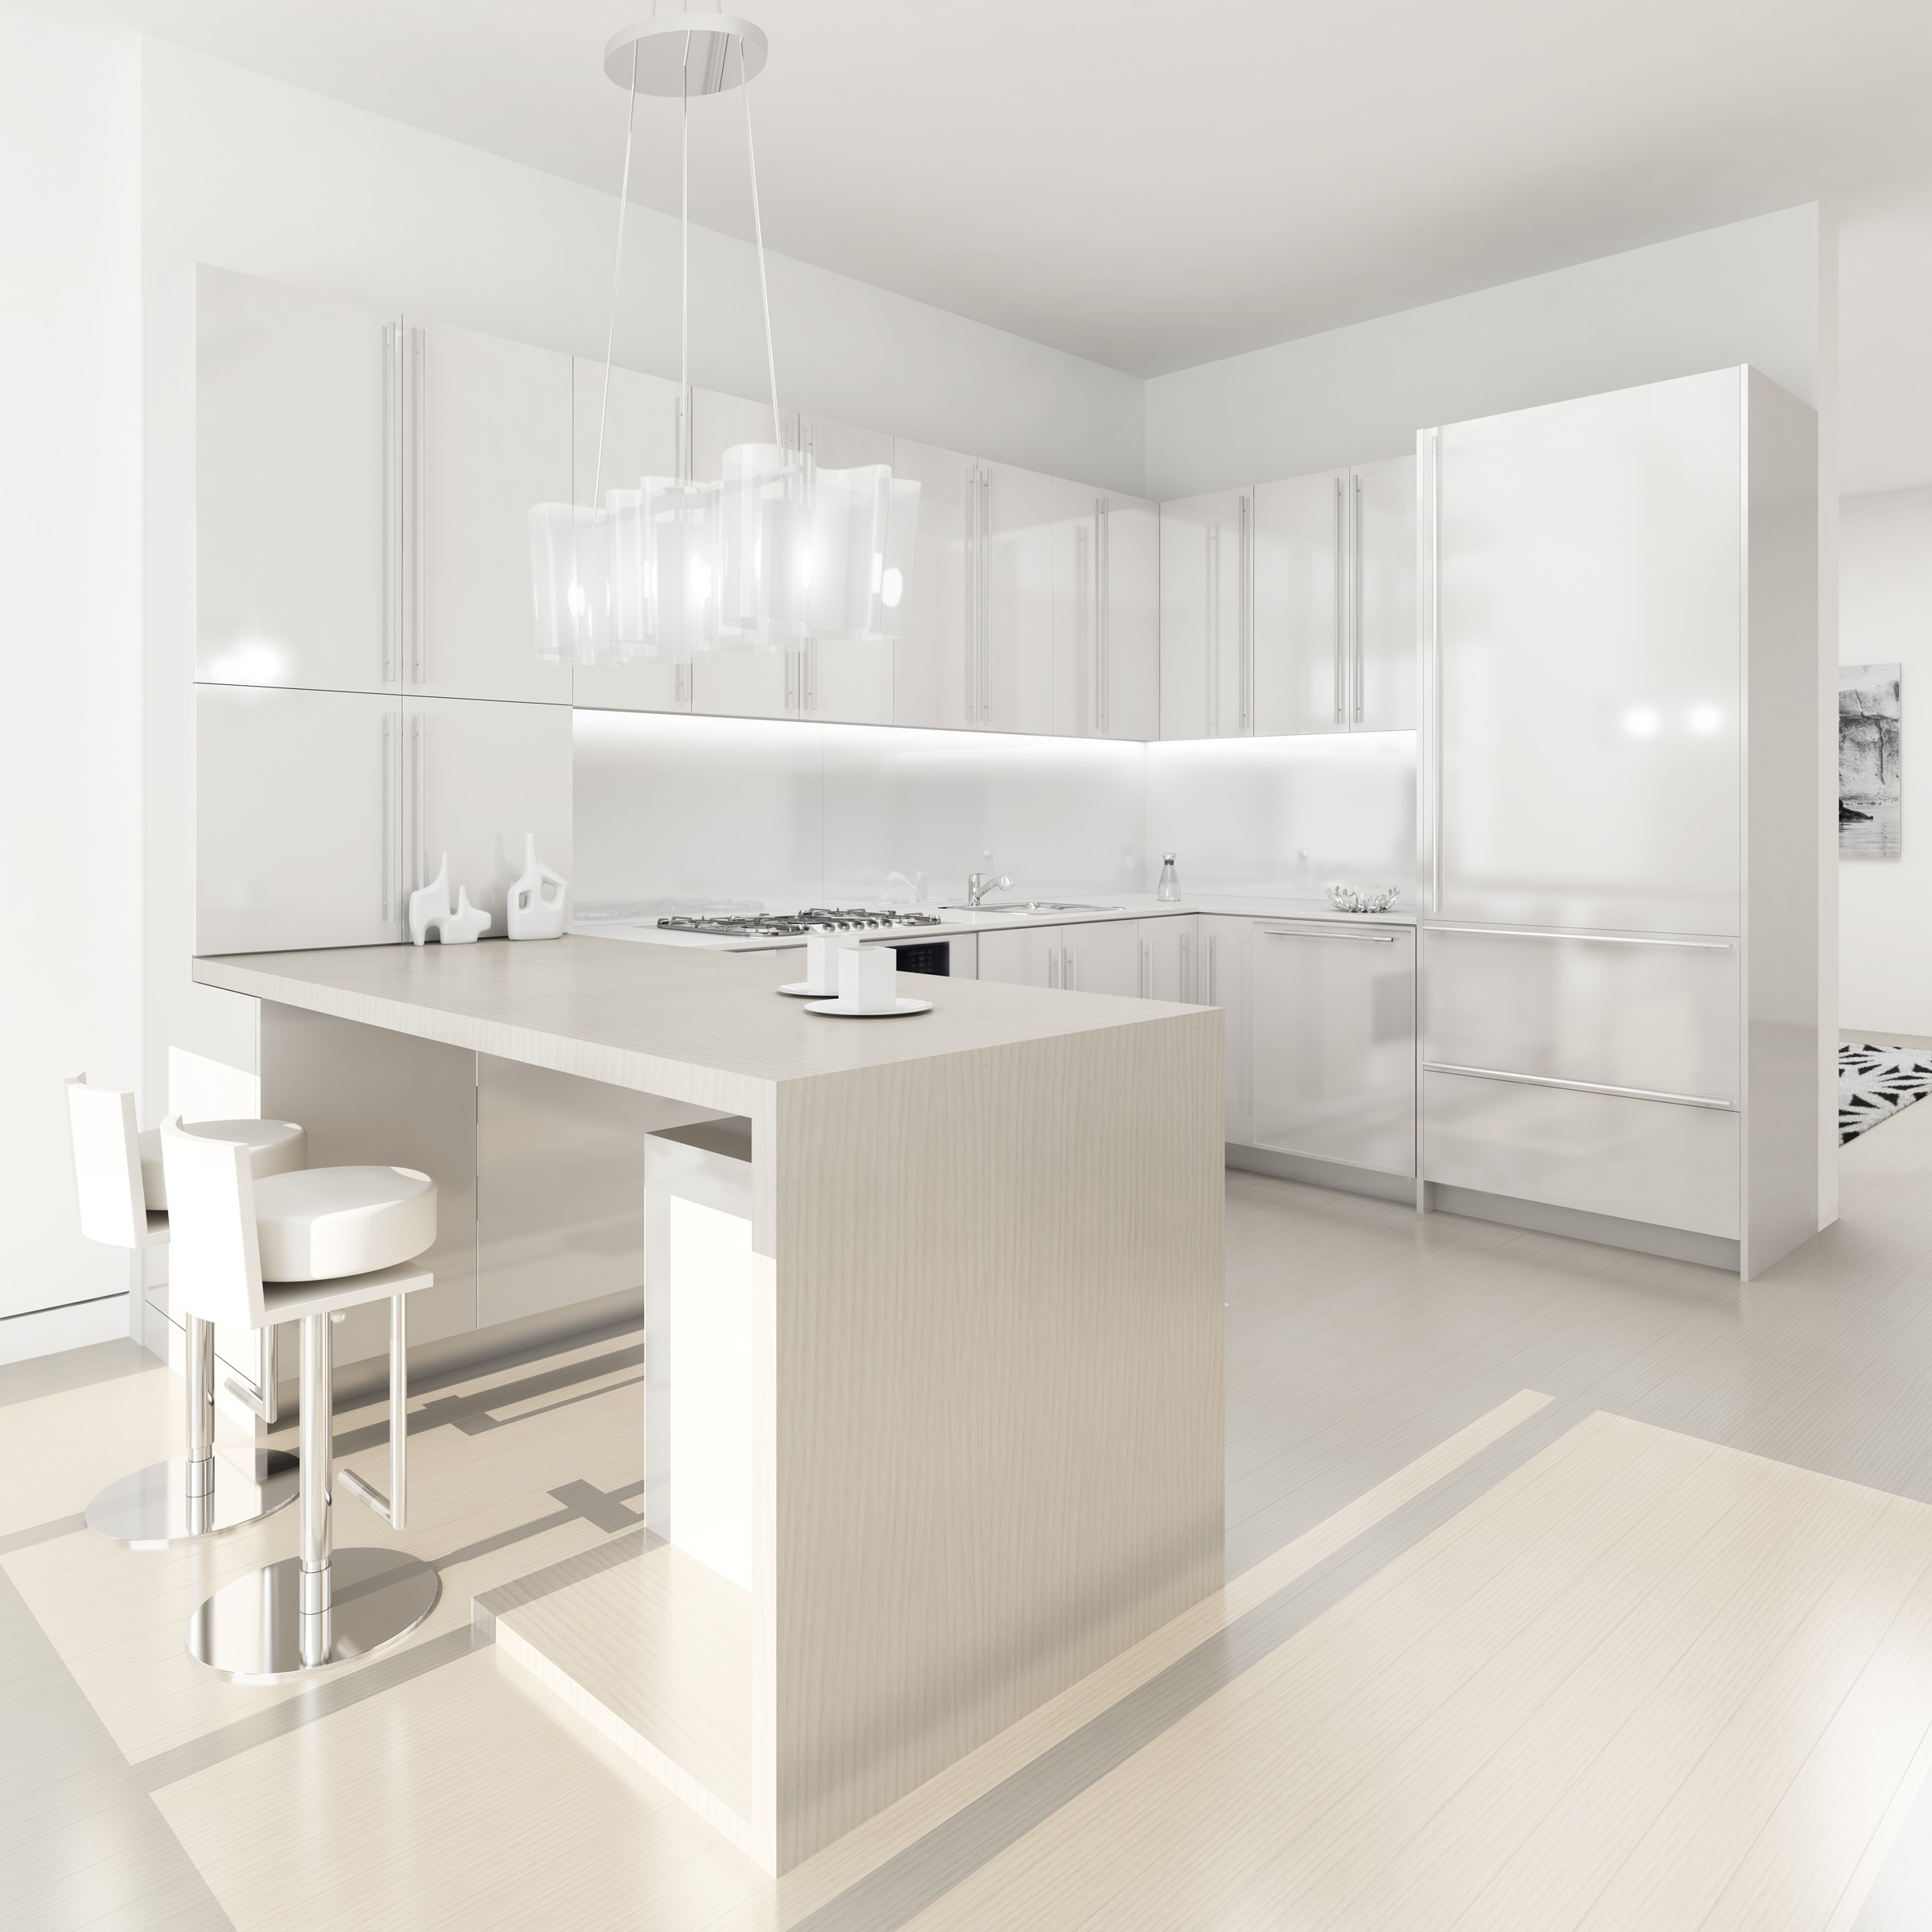 Modern Contemporary Kitchen Design: (my) WHITE KITCHEN(s)